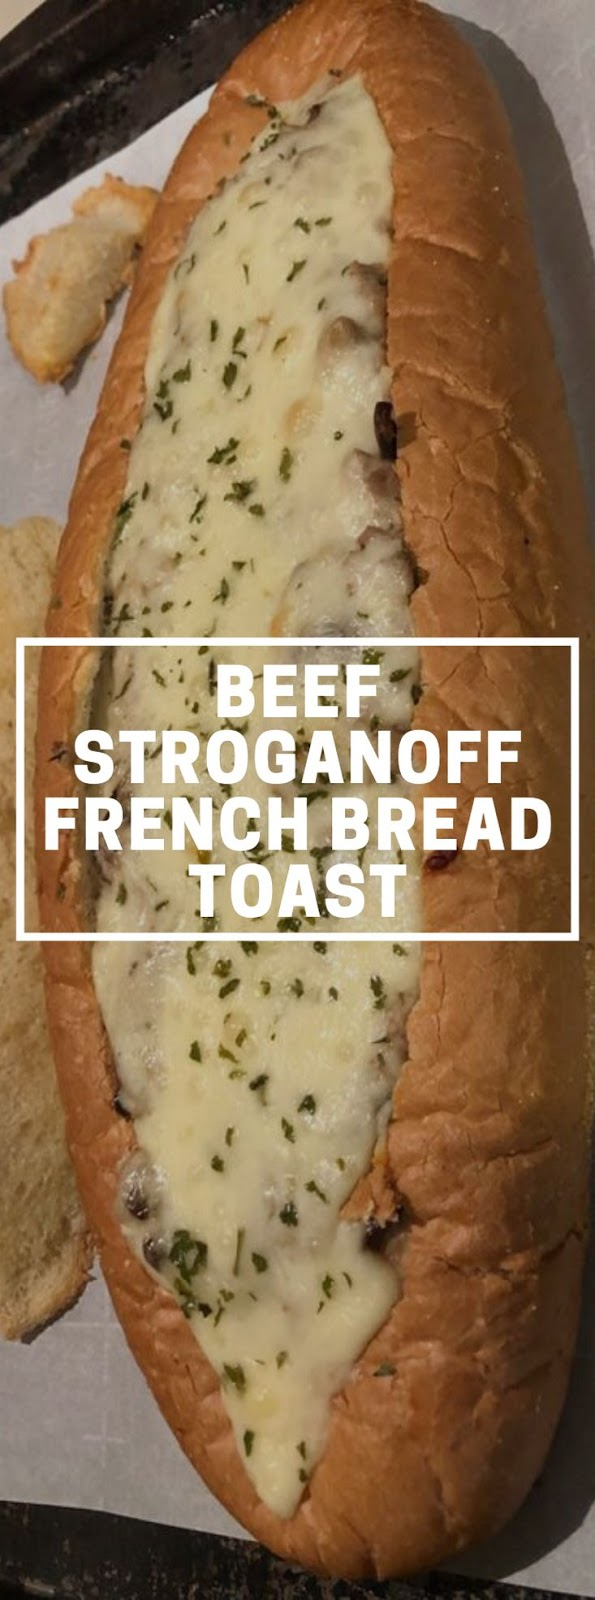 Beef Stroganoff French Bread Toast